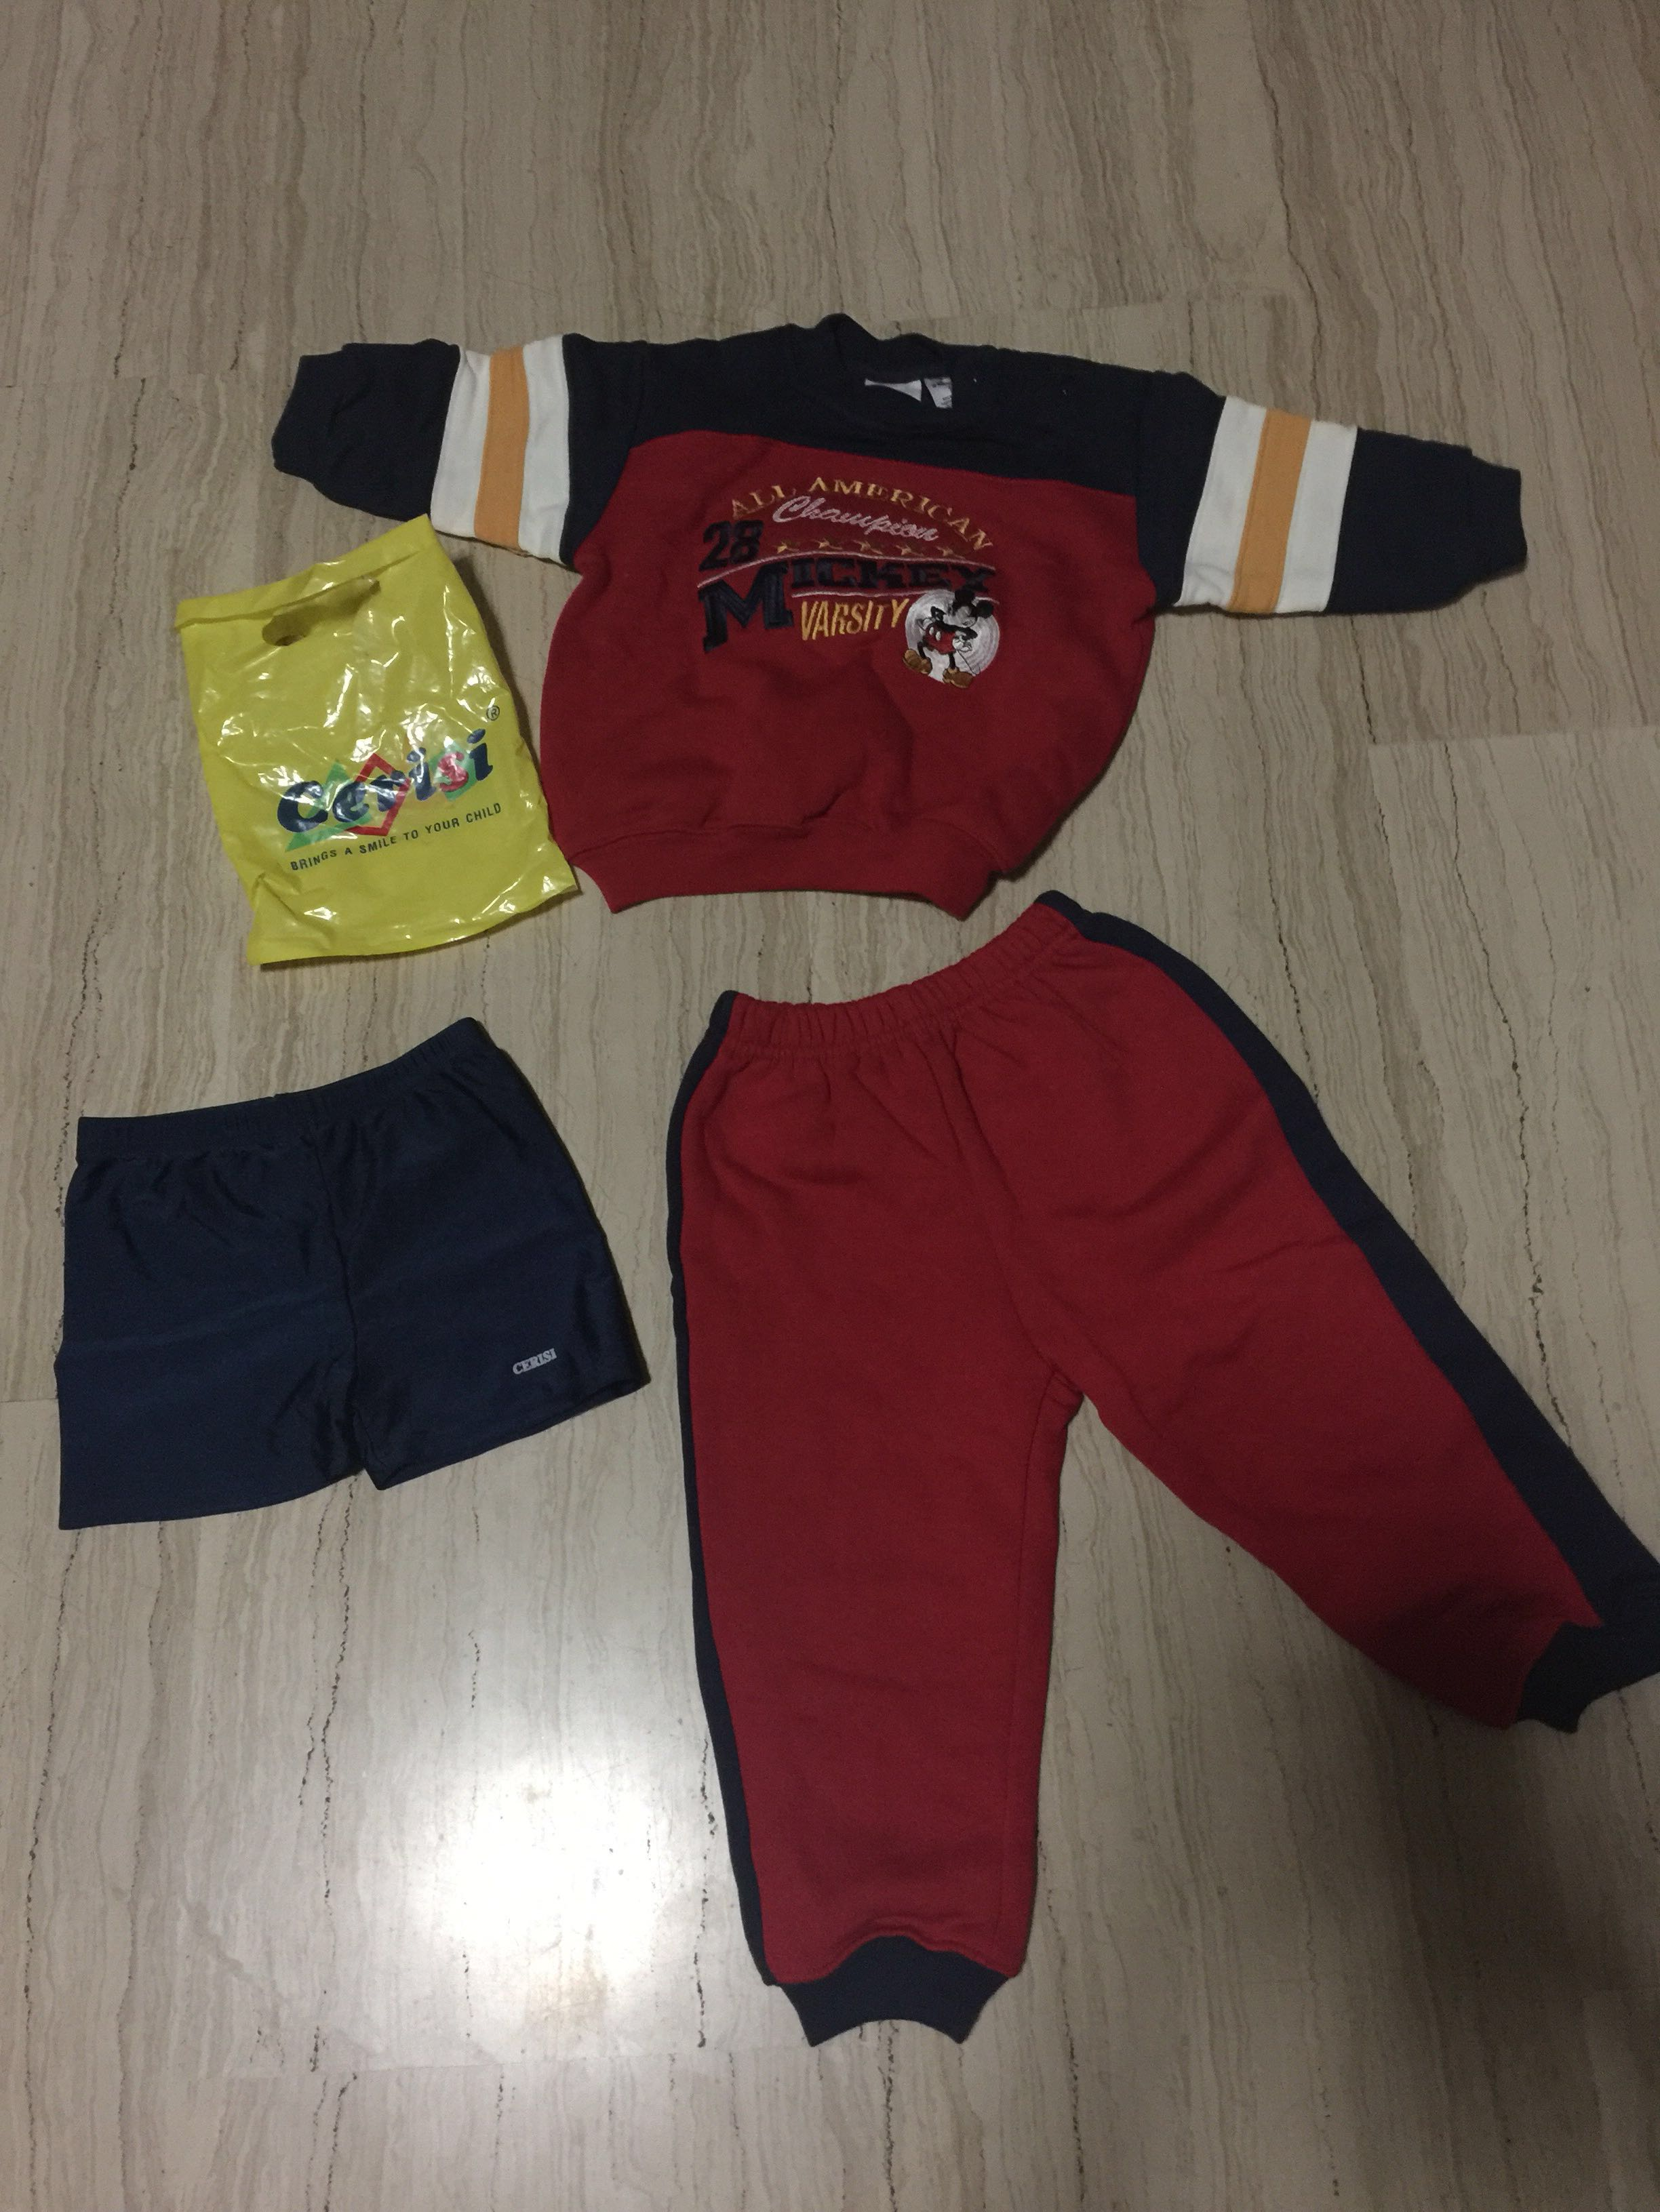 18months old 👶 suit The Disney Store & swim trunk Cerisis size 10